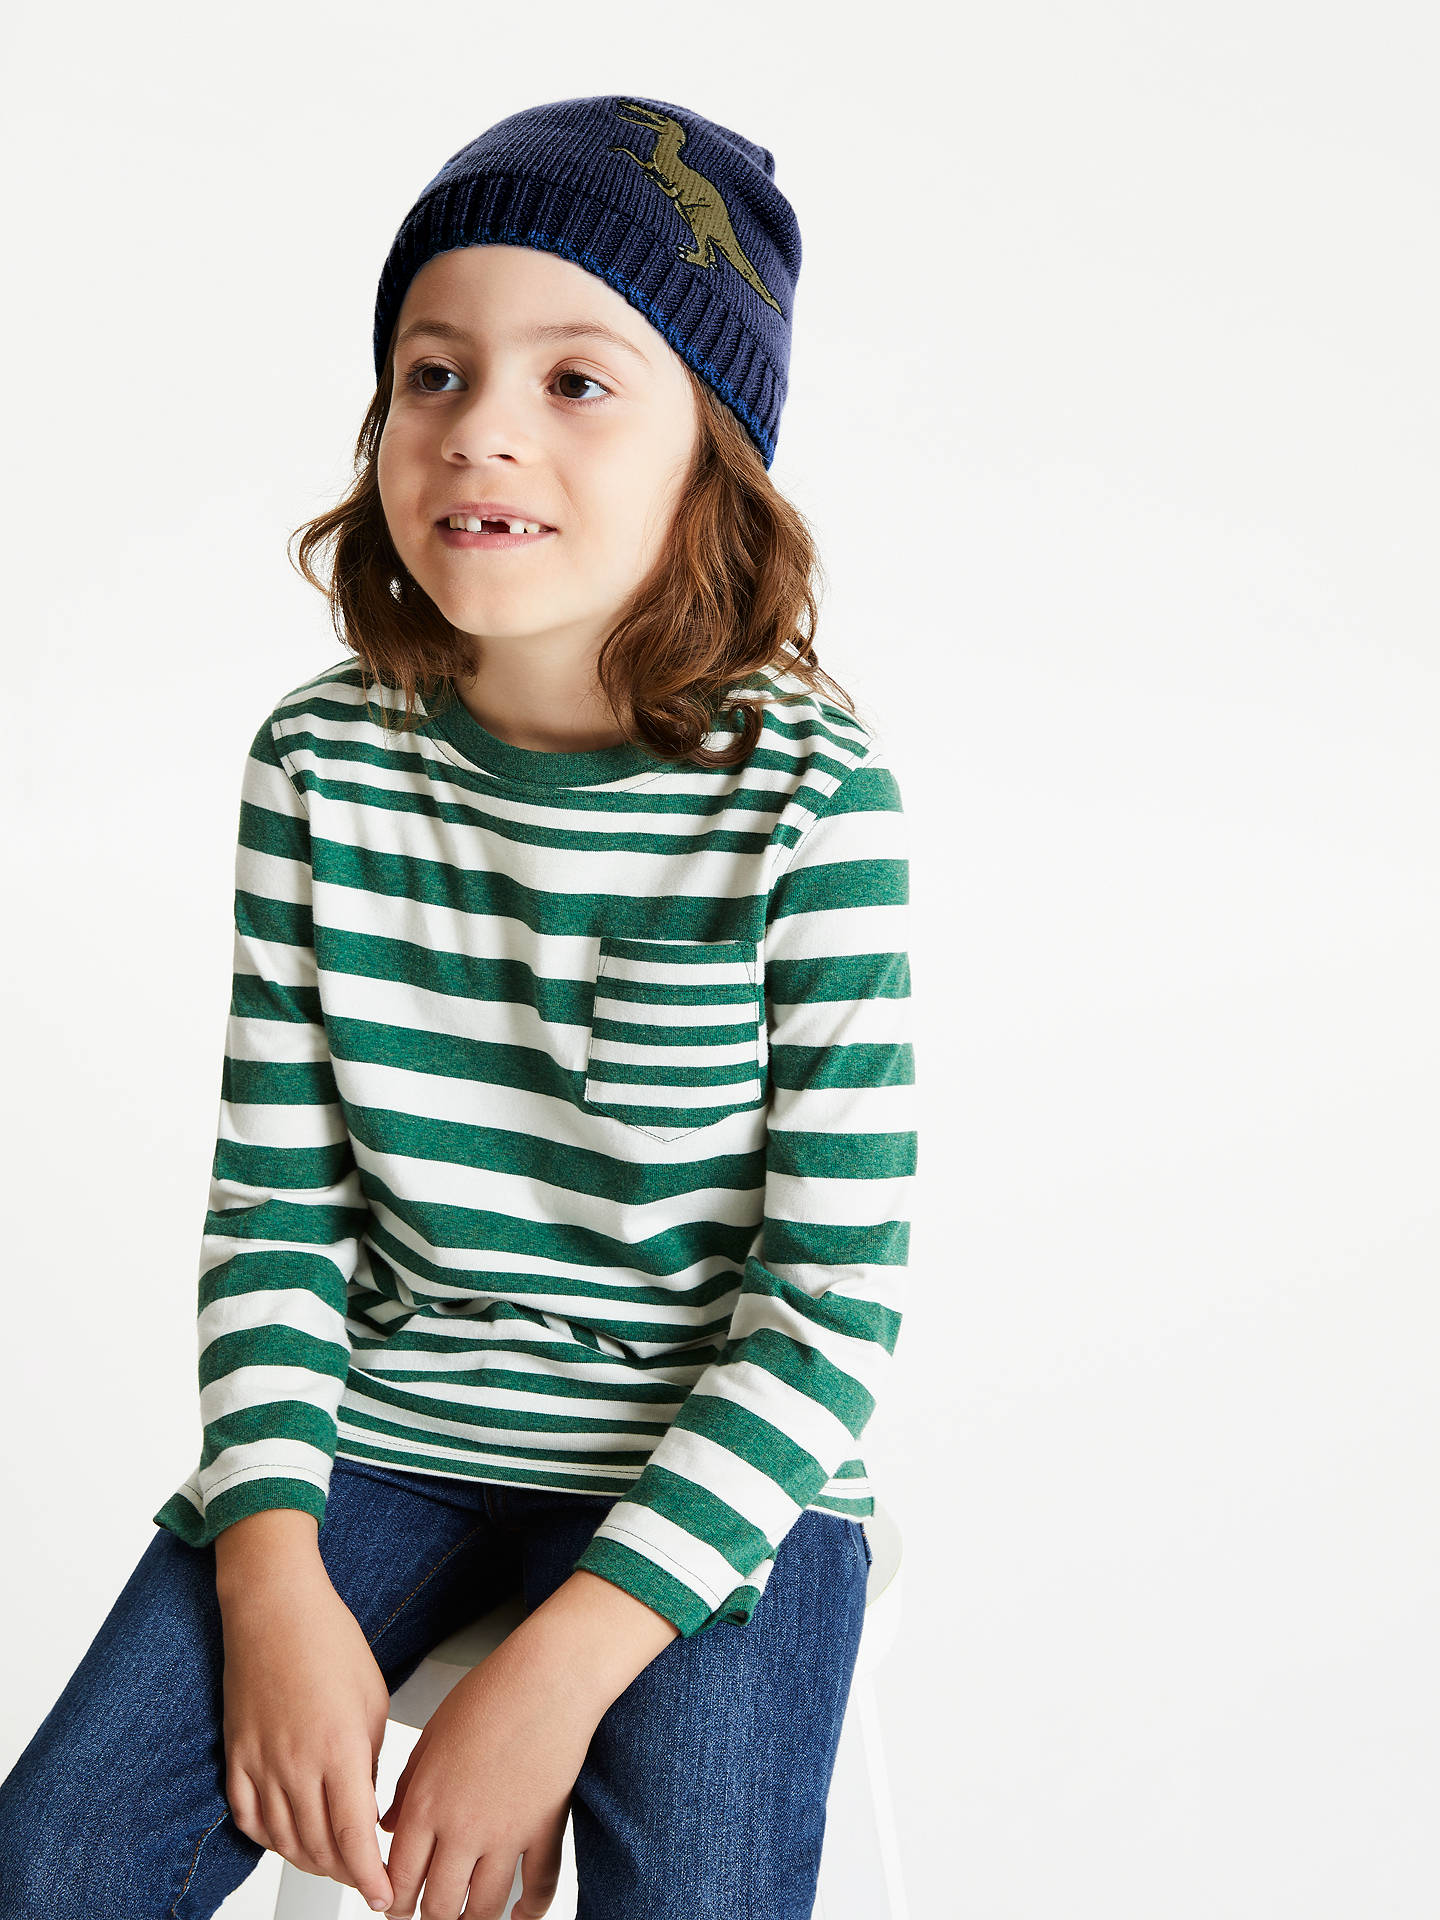 BuyJohn Lewis & Partners Children's Dinosaur Beanie Hat, Navy, 3-5 years Online at johnlewis.com